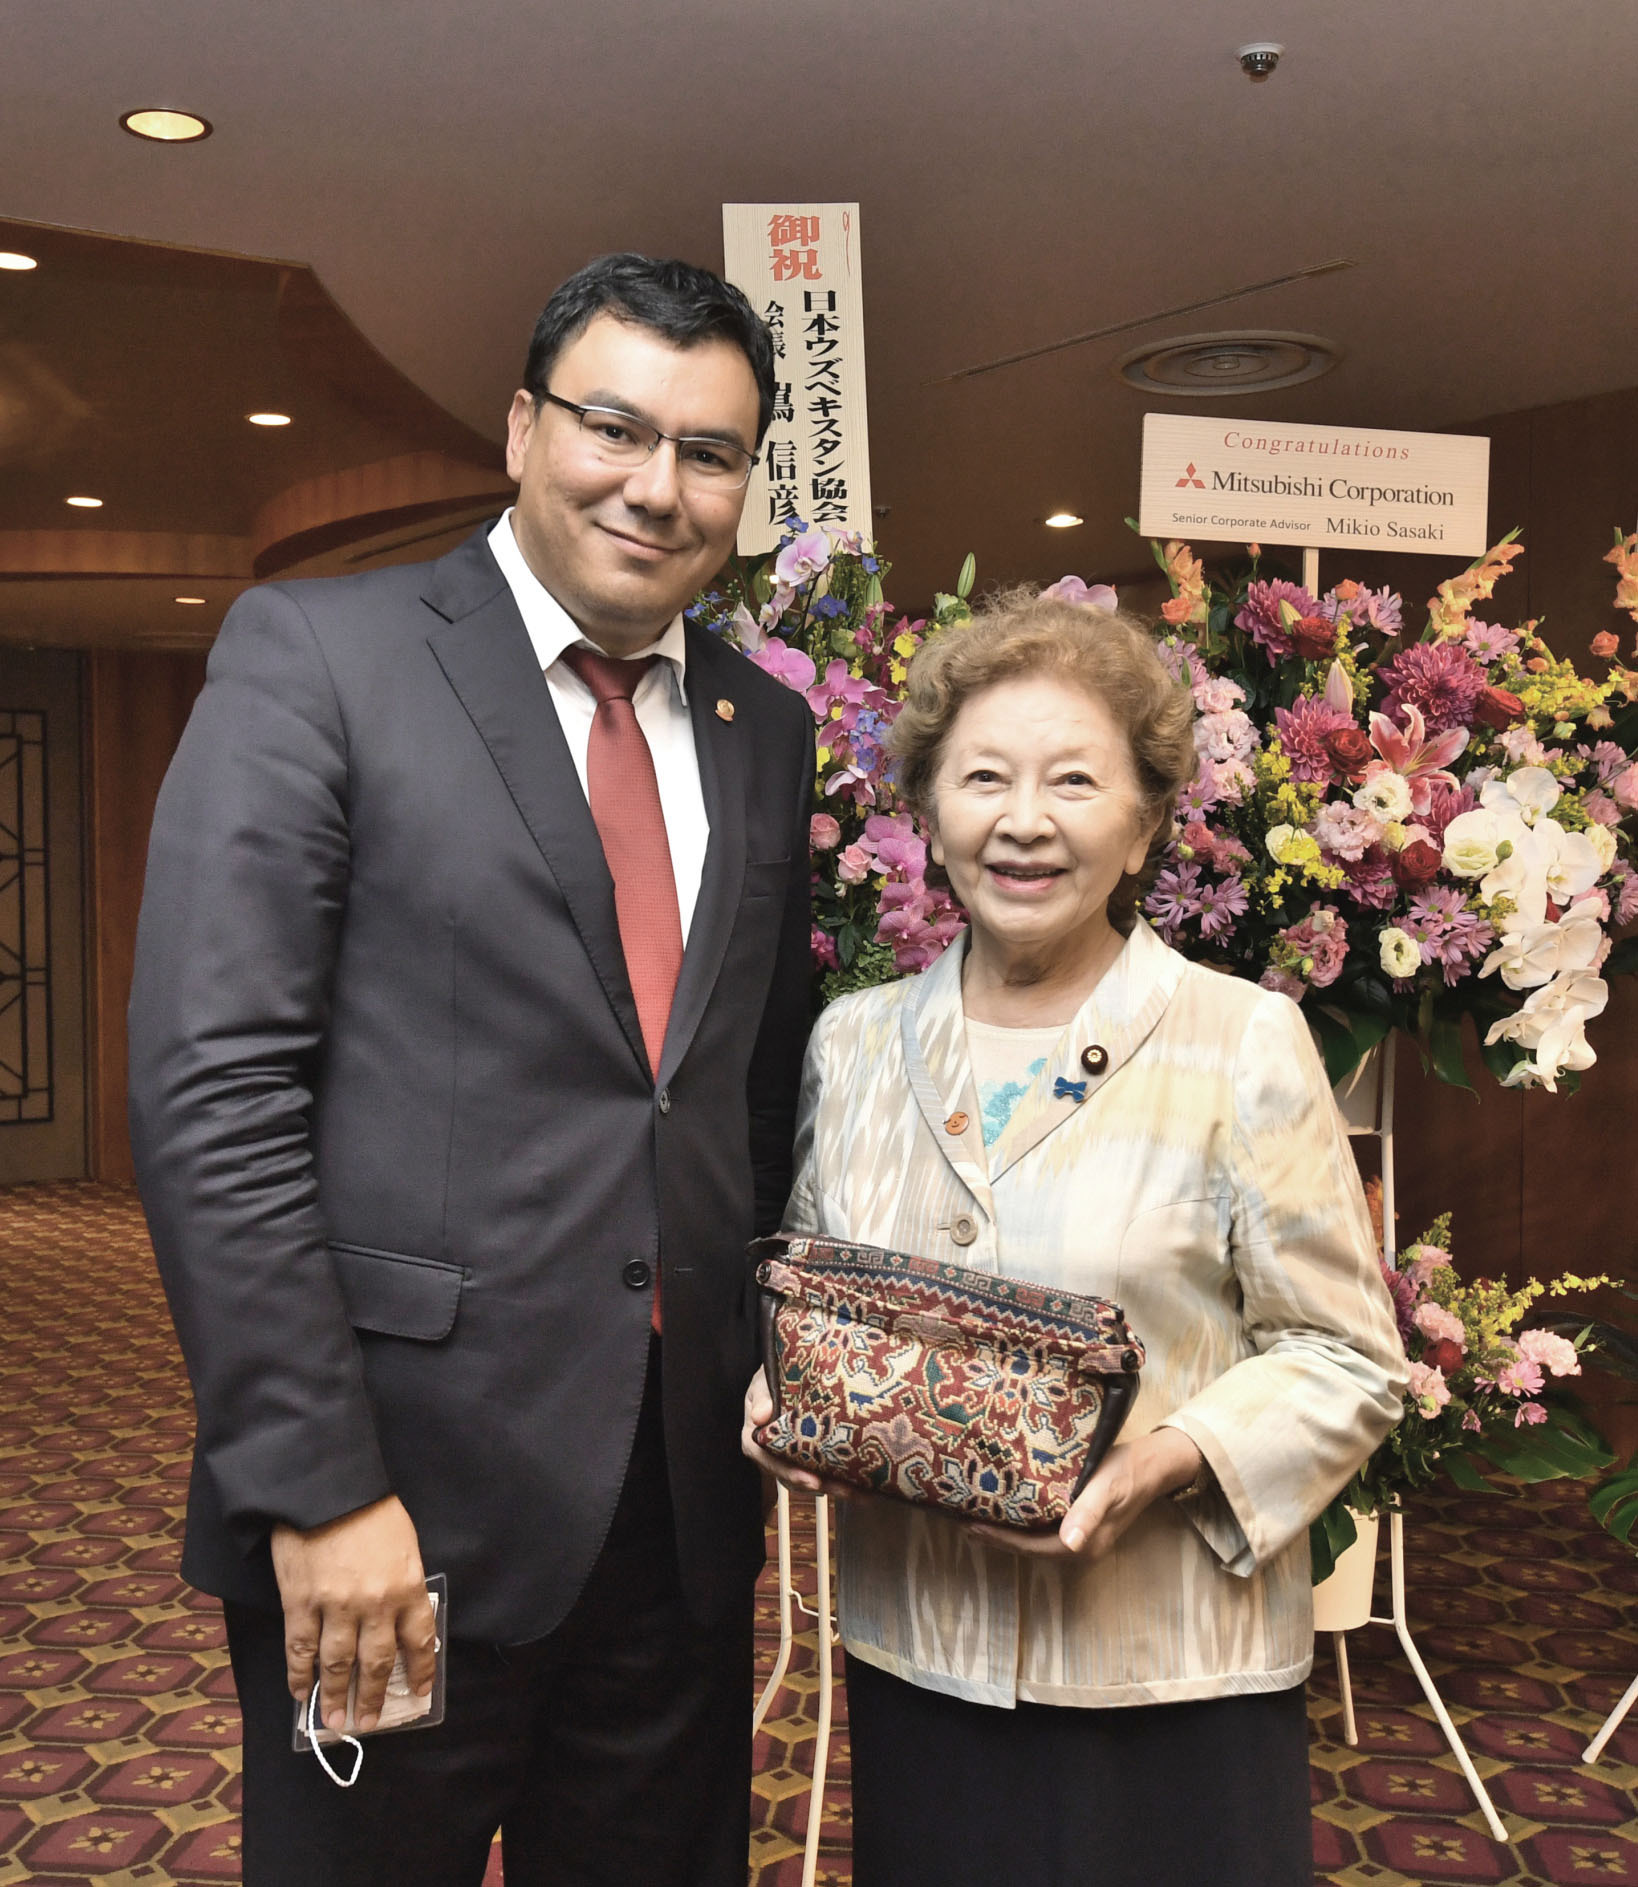 Uzbekistan's chairman of the state committee for tourism development, Aziz Abdukhakimov (left), poses for a photo with Kyoko Nakayama, former ambassador to Uzbekistan and Upper House lawmaker, during a reception to celebrate the country's independence day at Hotel Okura, Tokyo on Sept. 22. |  YOSHIAKI MIURA